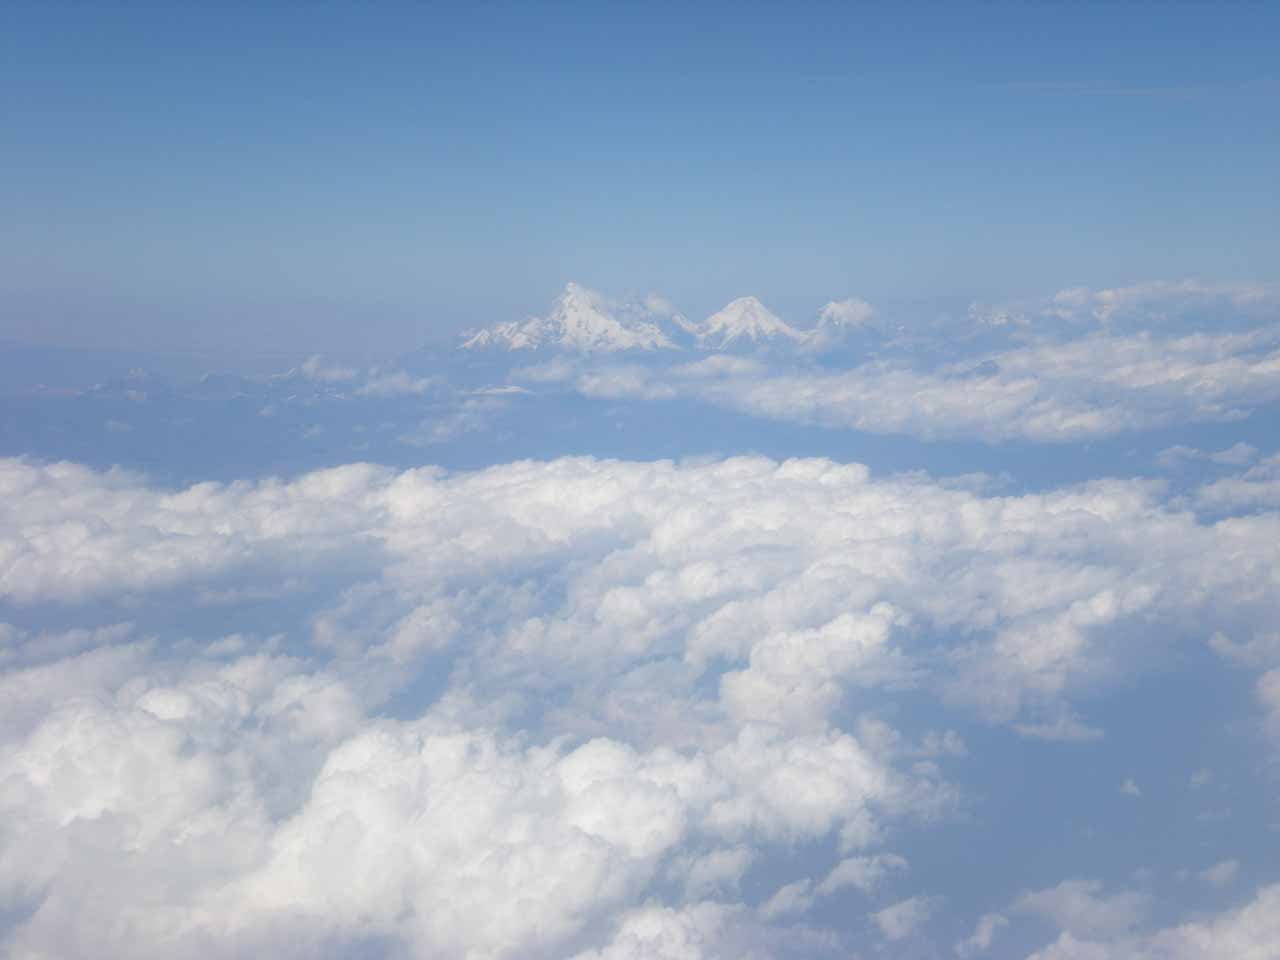 Other Himalayan peaks